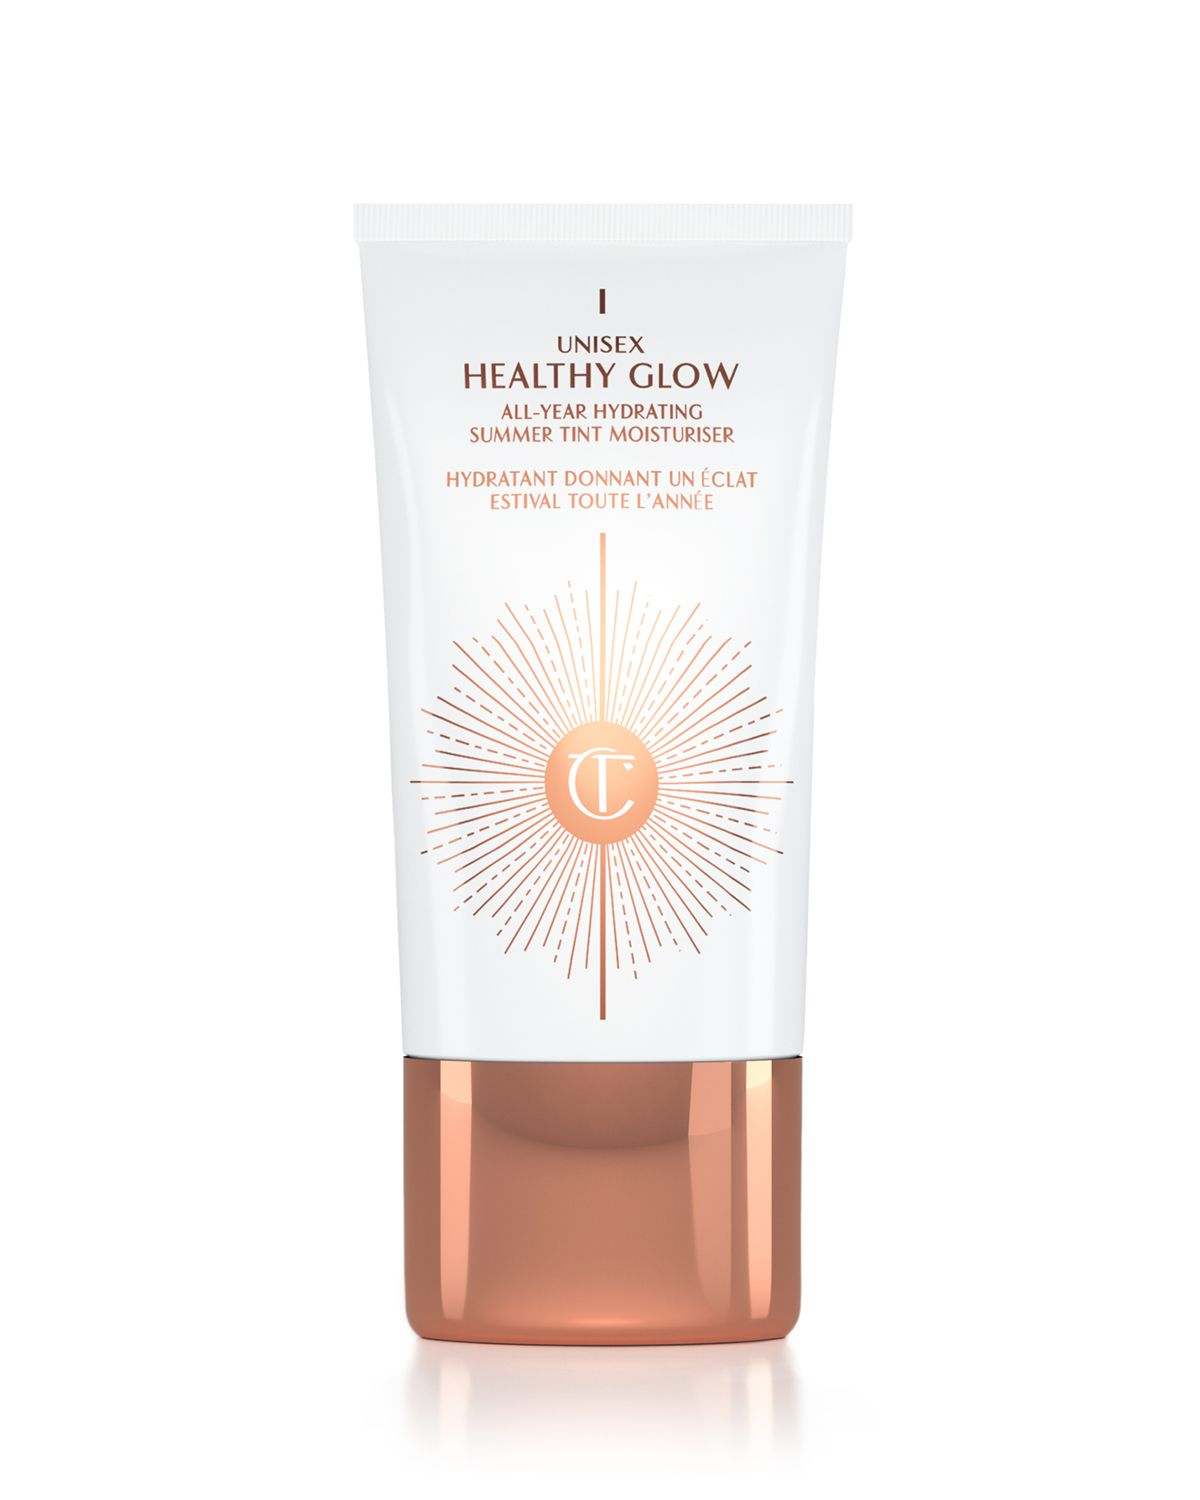 Unisex Healthy Glow All Year Summer Tint Hydrating Moisturizer by Charlotte Tilbury